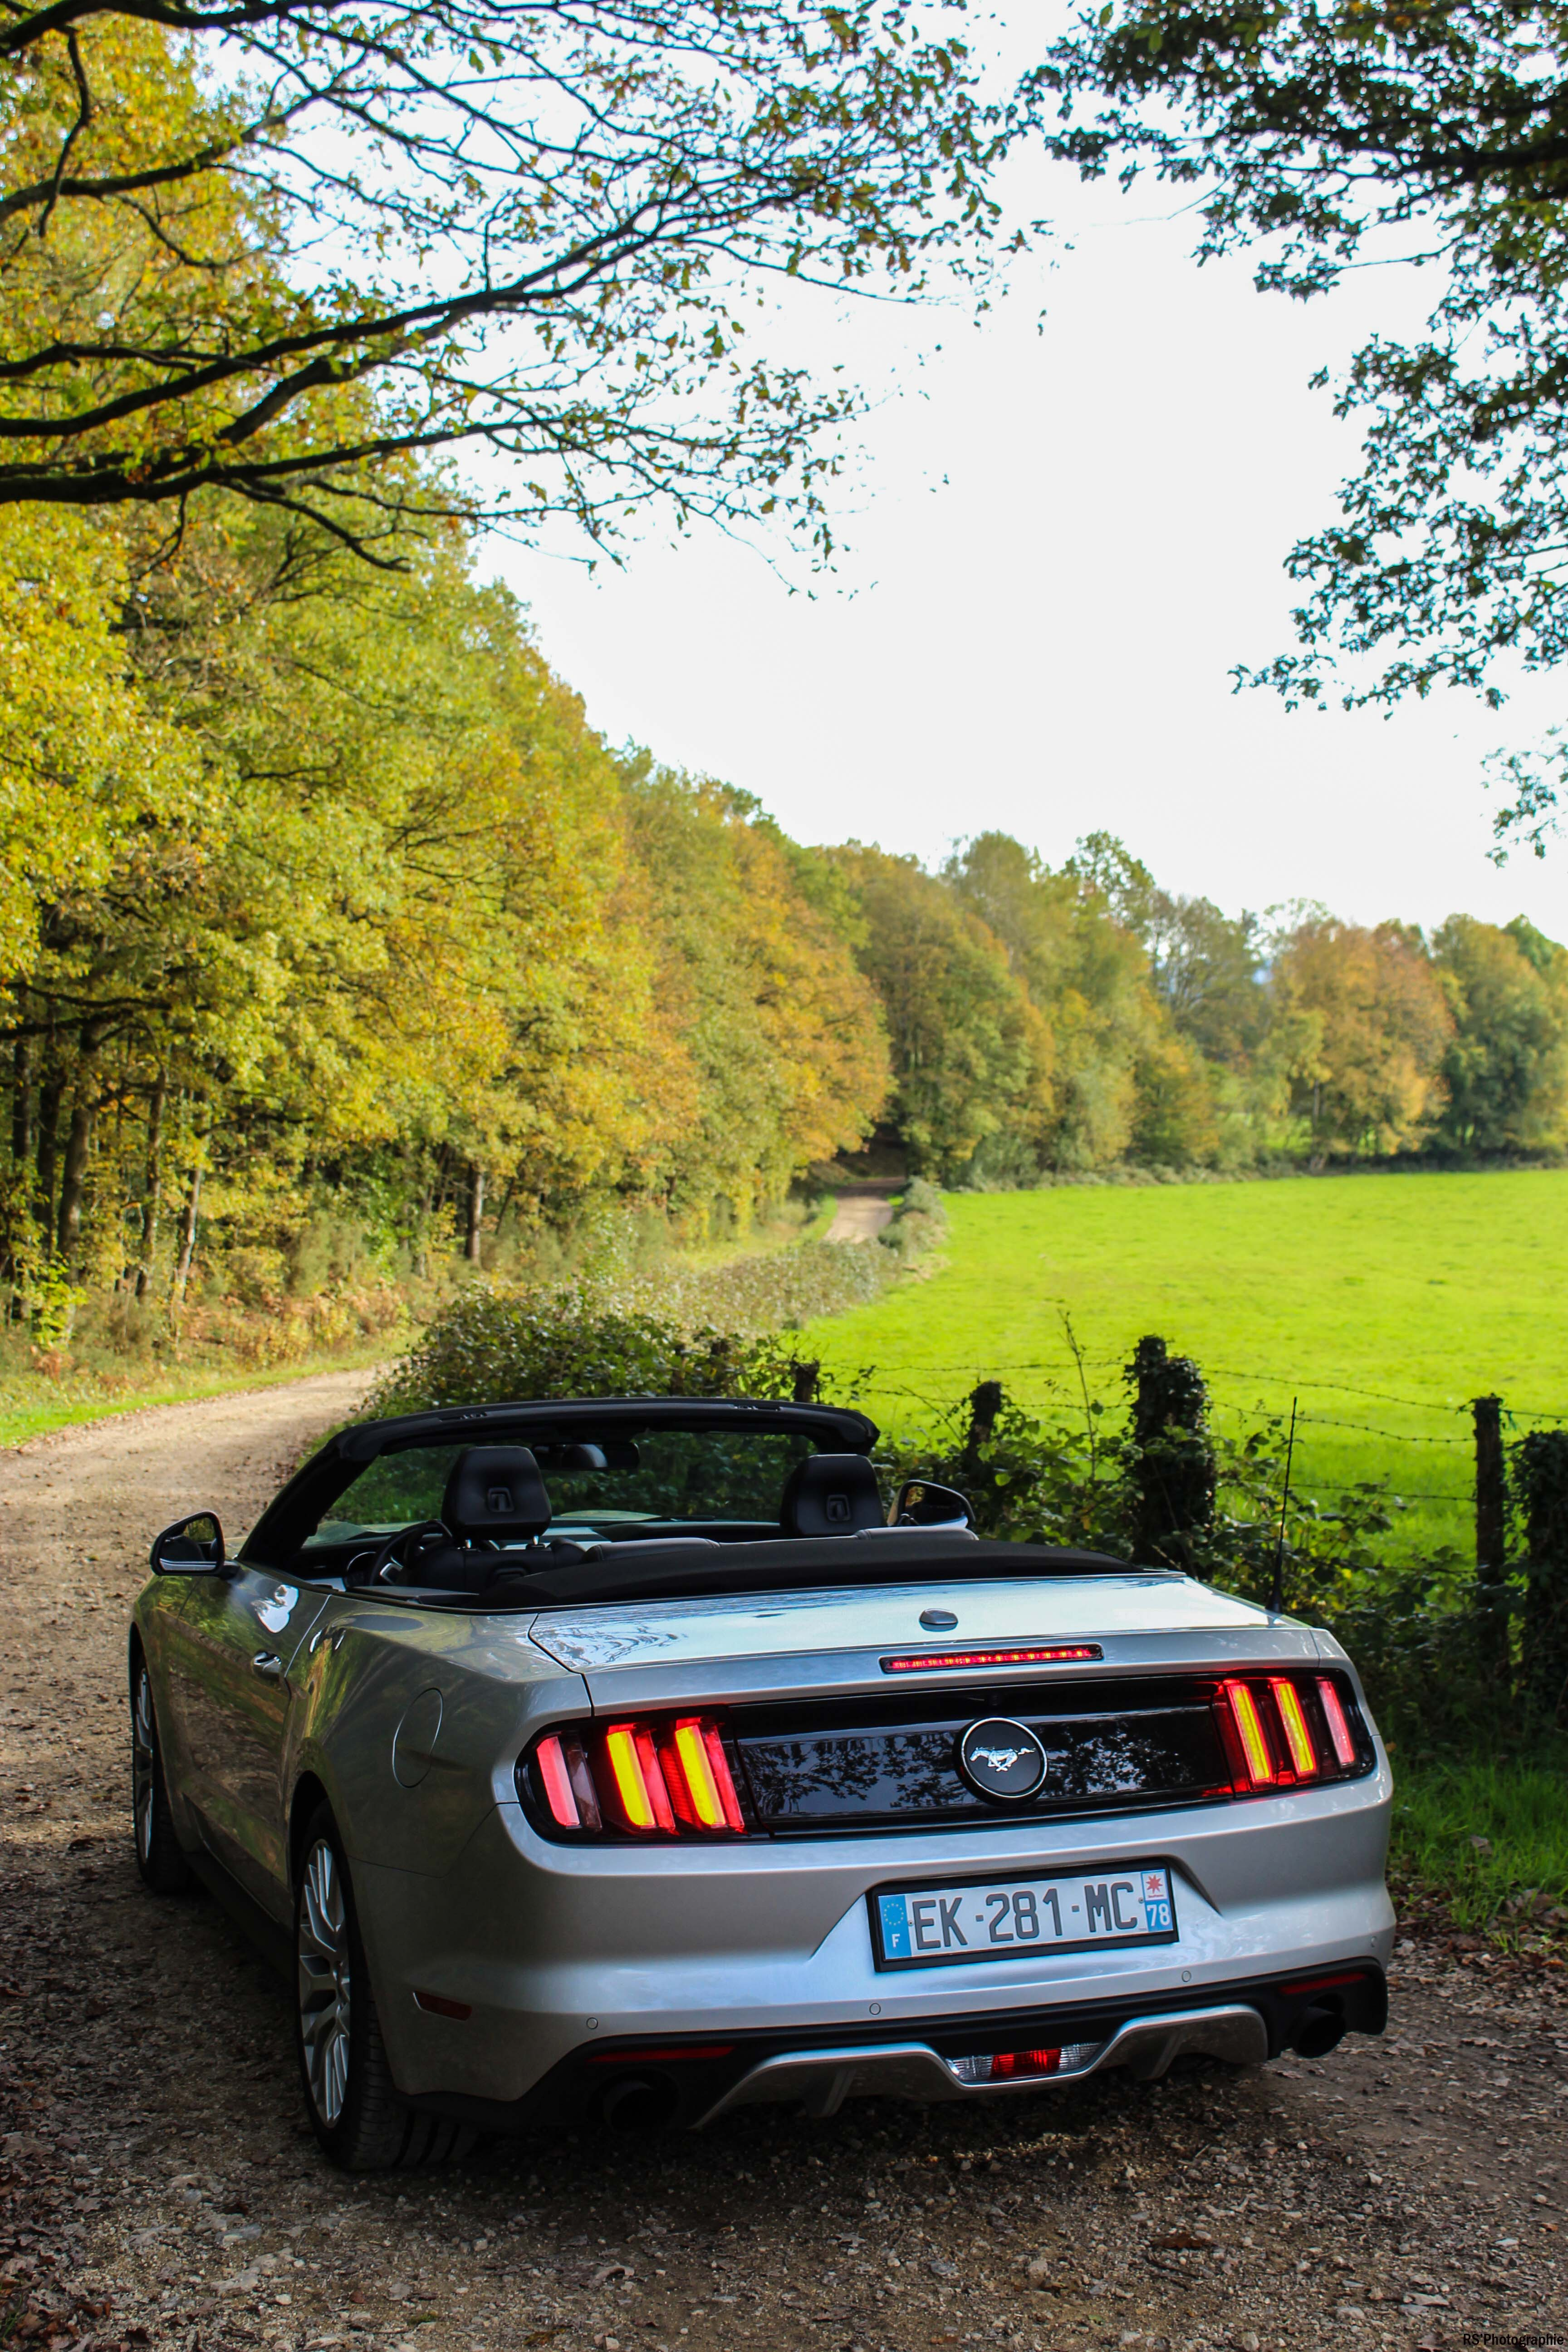 fordmustangeconvertible62-ford-mustang-convertible-ecoboost-arrière-rear-Arnaud Demasier-RSPhotographie